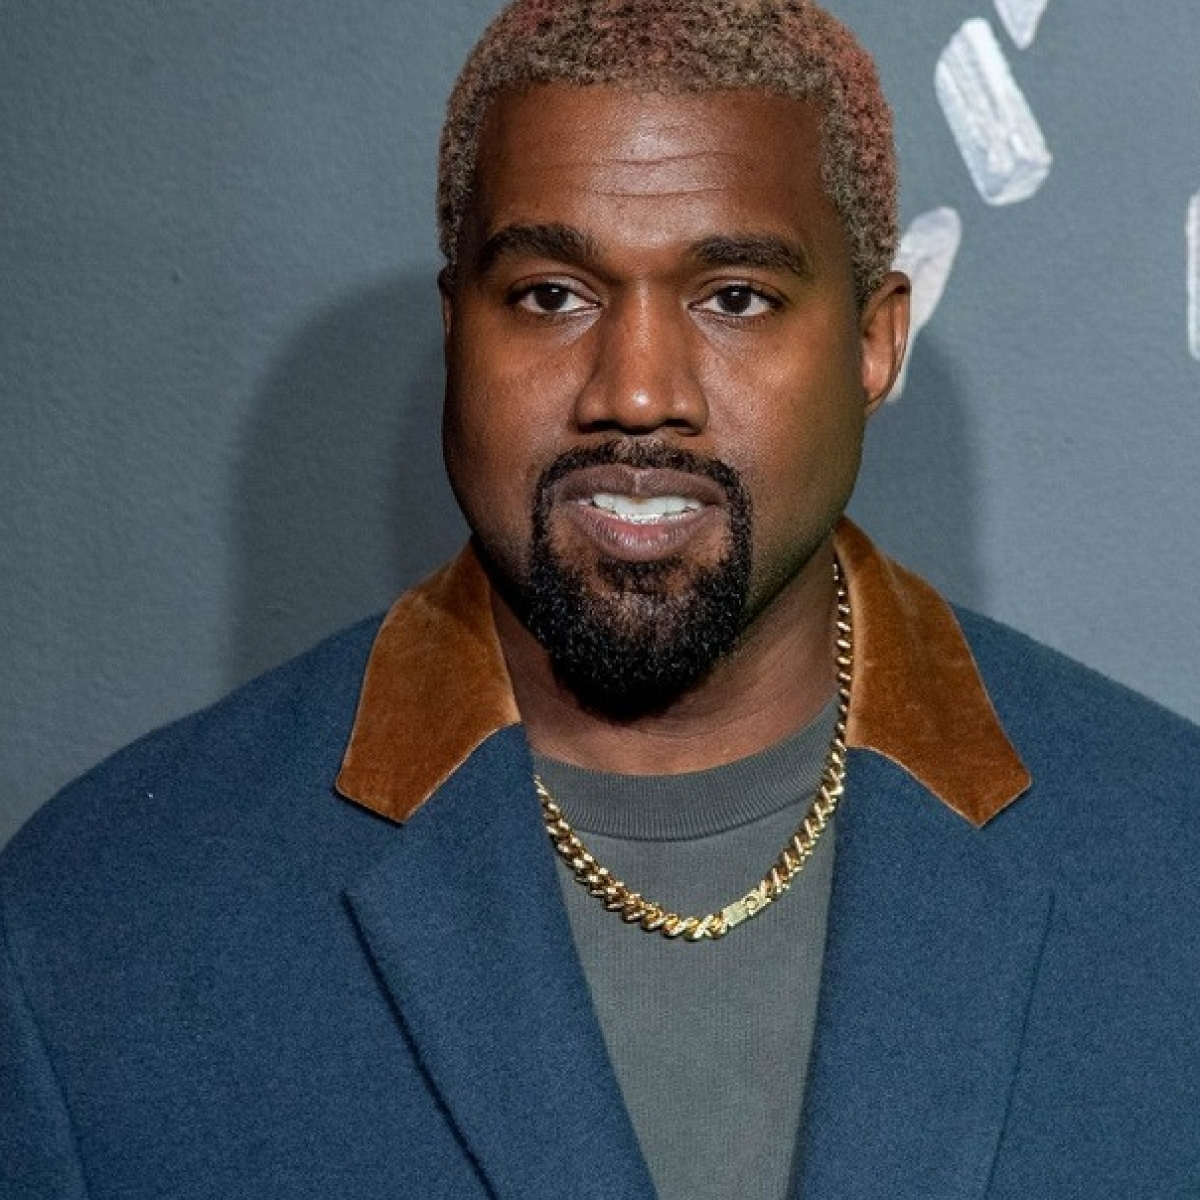 'This is like Salman Khan throwing in his hat to be PM': Twitter goes bonkers as Kanye West announces US Presidential bid